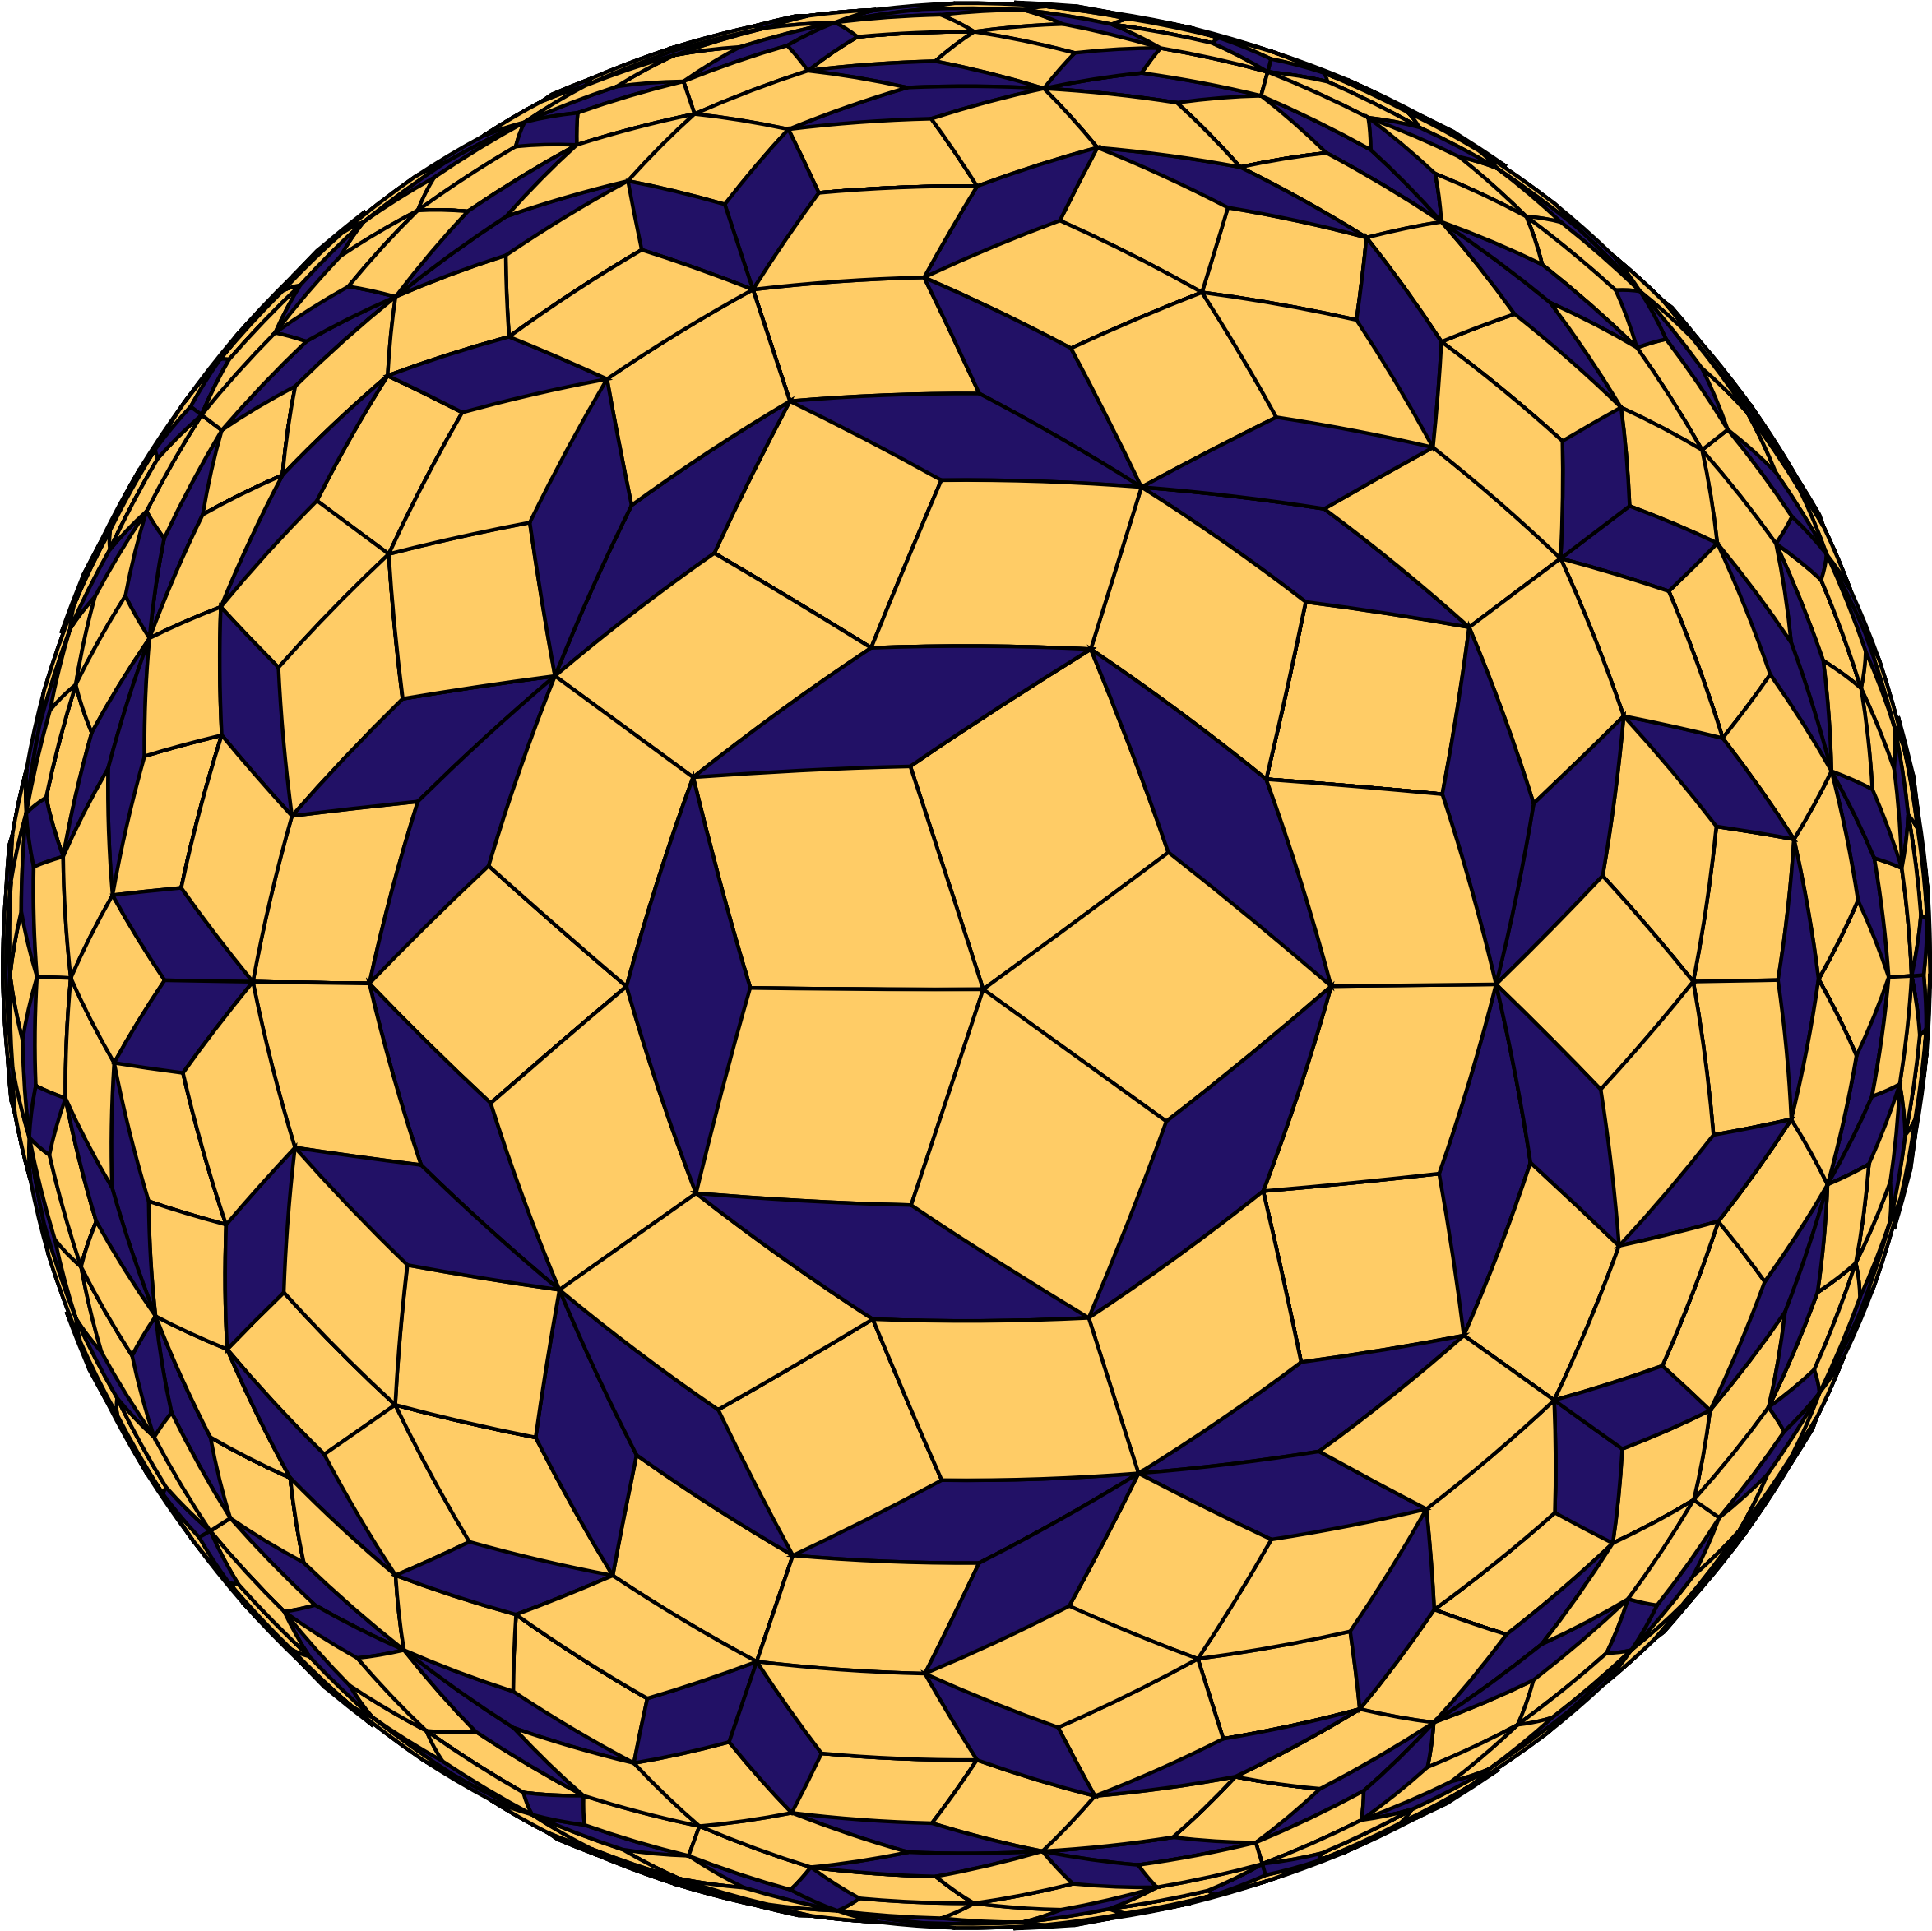 Penrose Tiled Sphere by GDJ